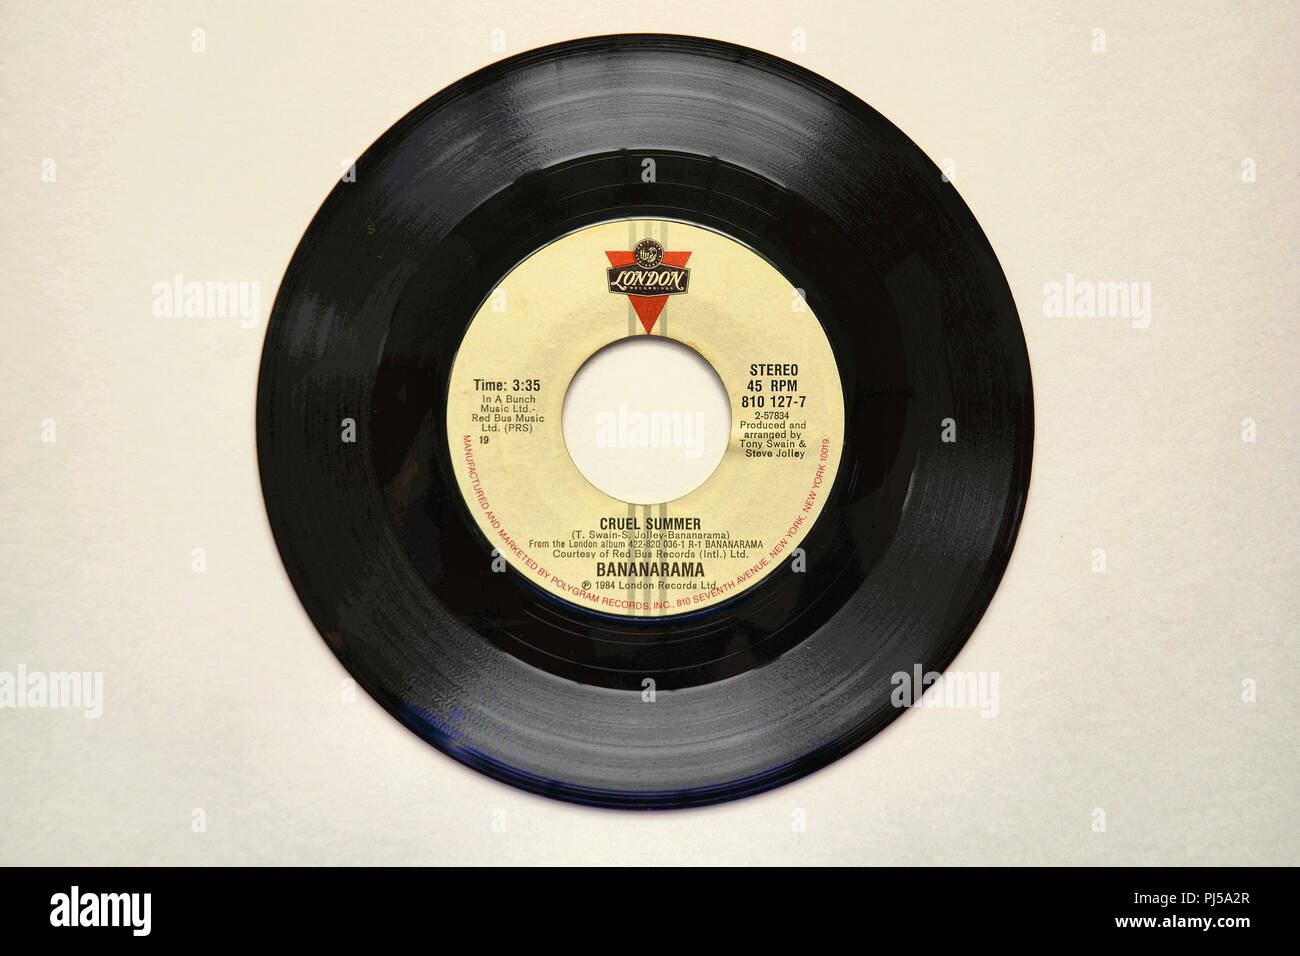 45 RPM vinyl record of Bananarama's song 'Cruel Summer' released in 1984 by London Recordings. - Stock Image